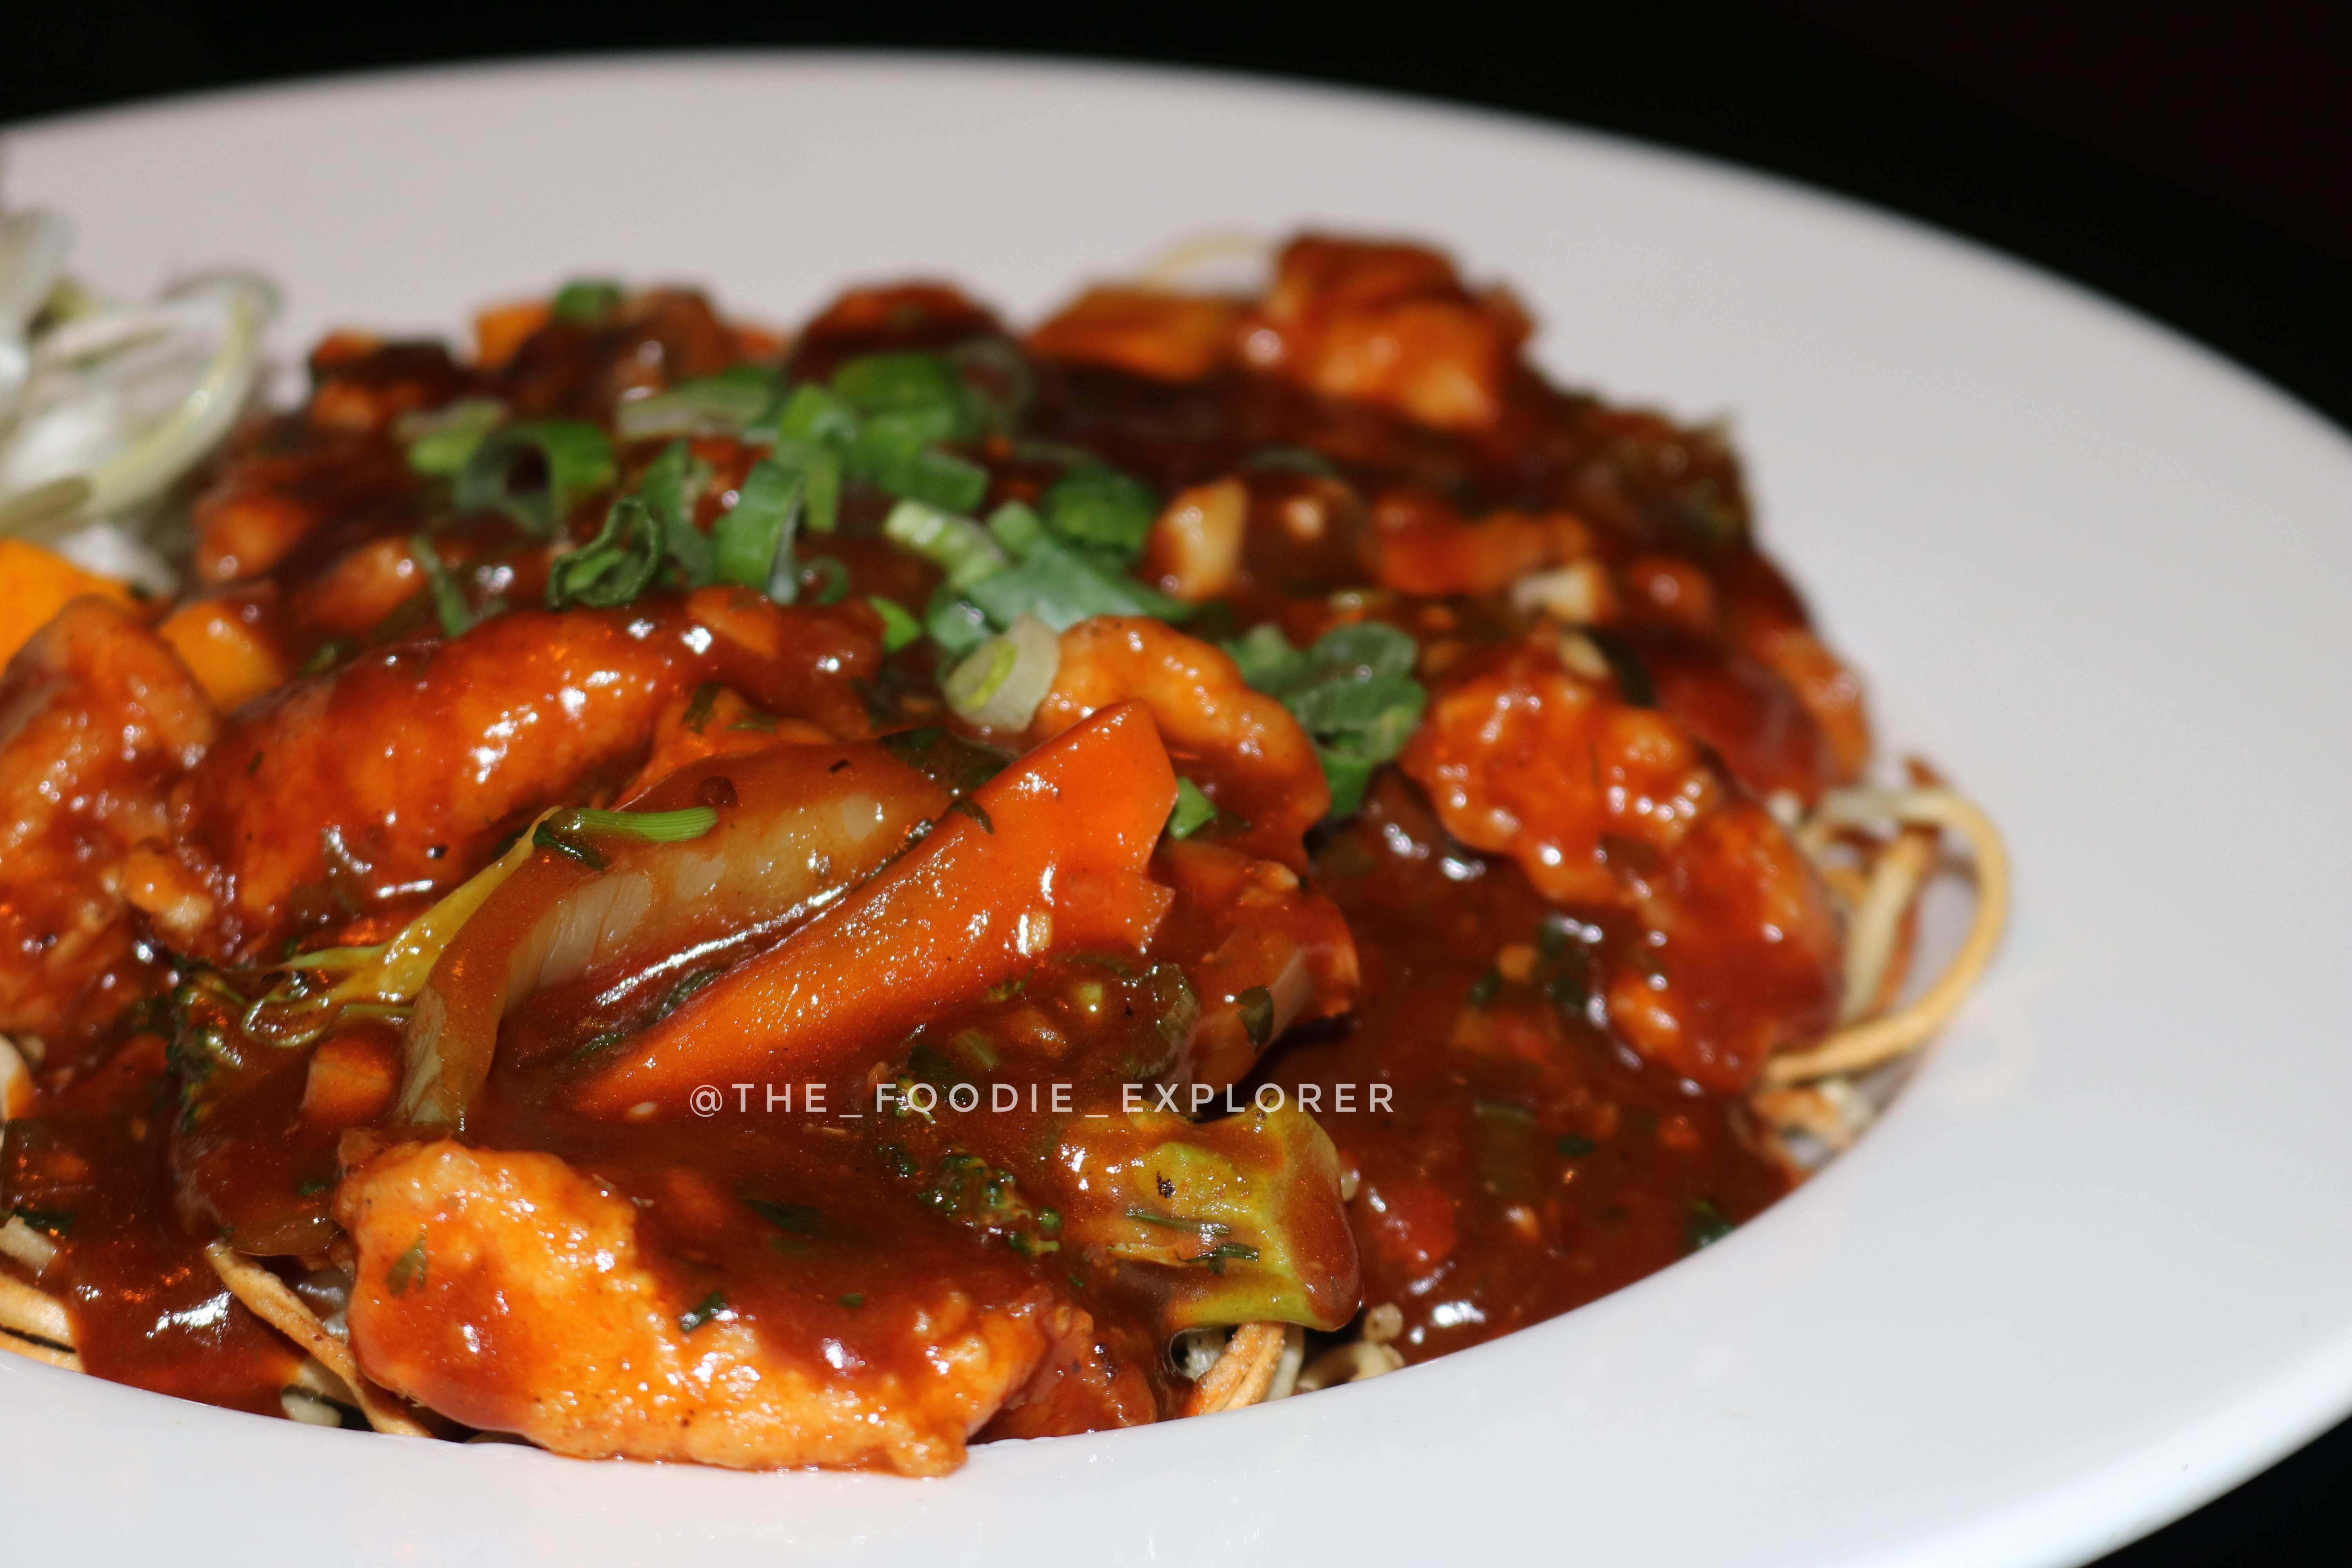 Dish,Food,Cuisine,Meat,Ingredient,General tso's chicken,Kung pao chicken,Sweet and sour,Produce,Sweet and sour chicken